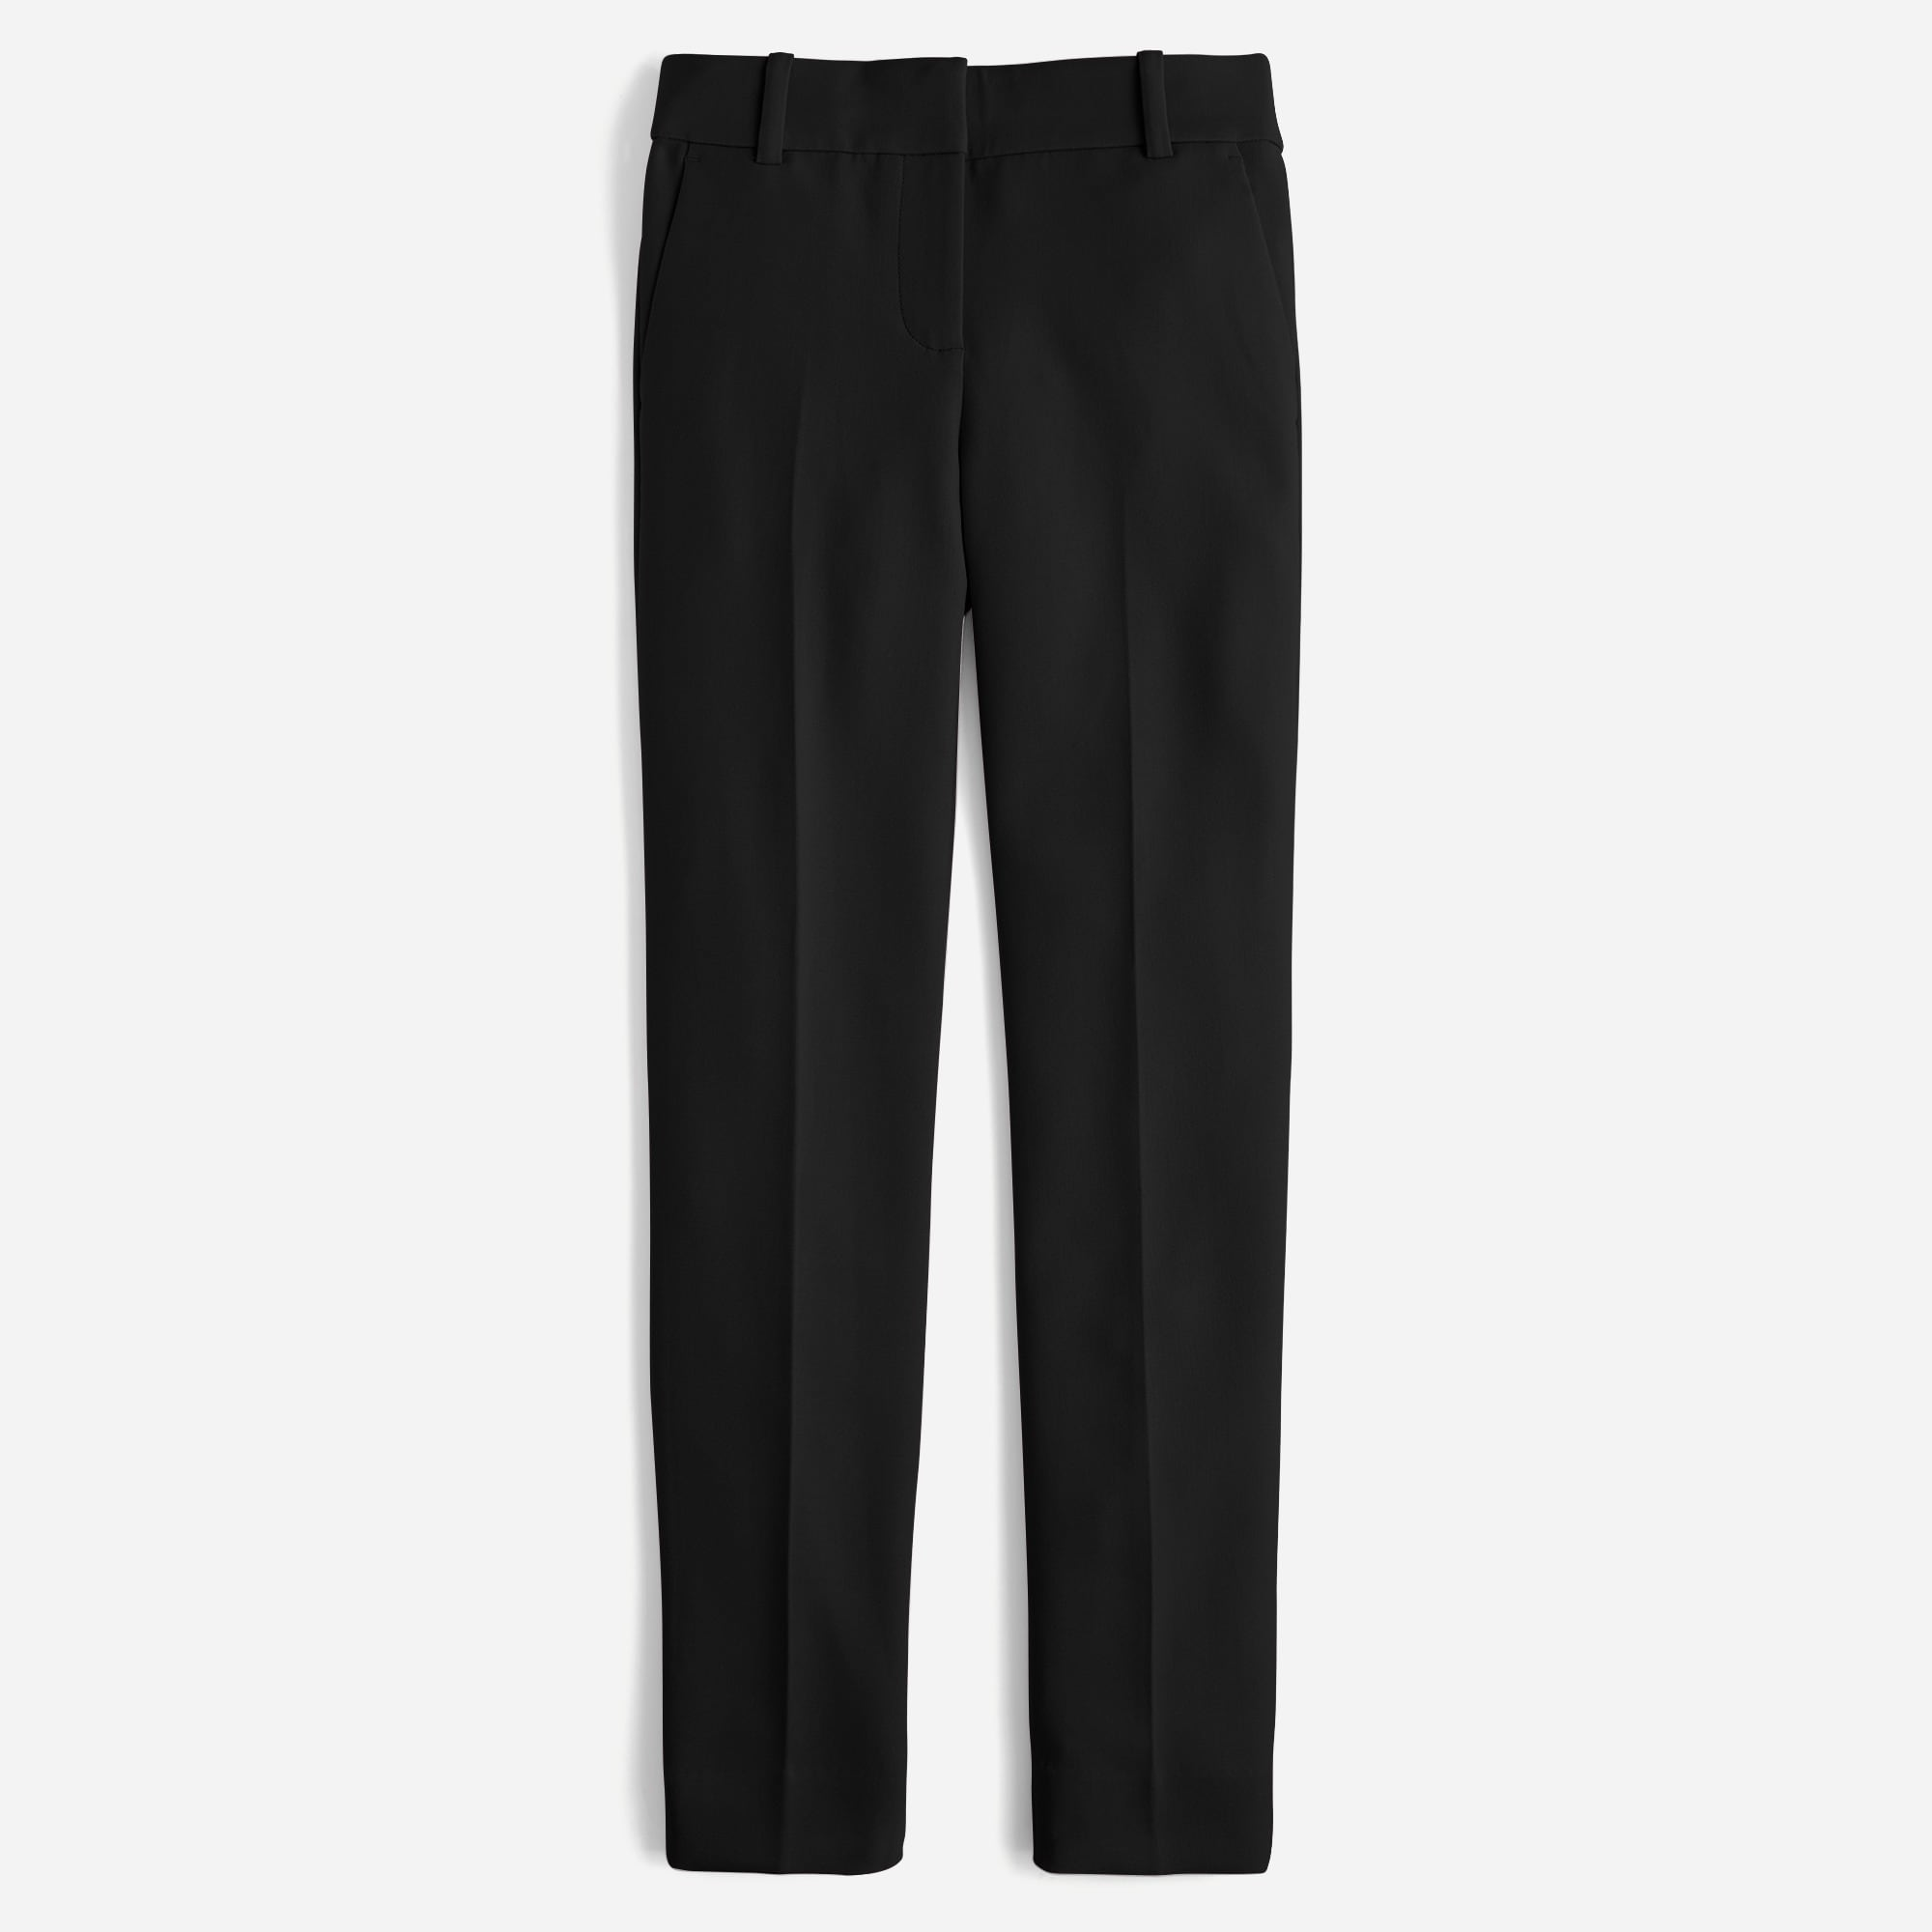 Image 8 for Cameron slim crop pant in four-season stretch